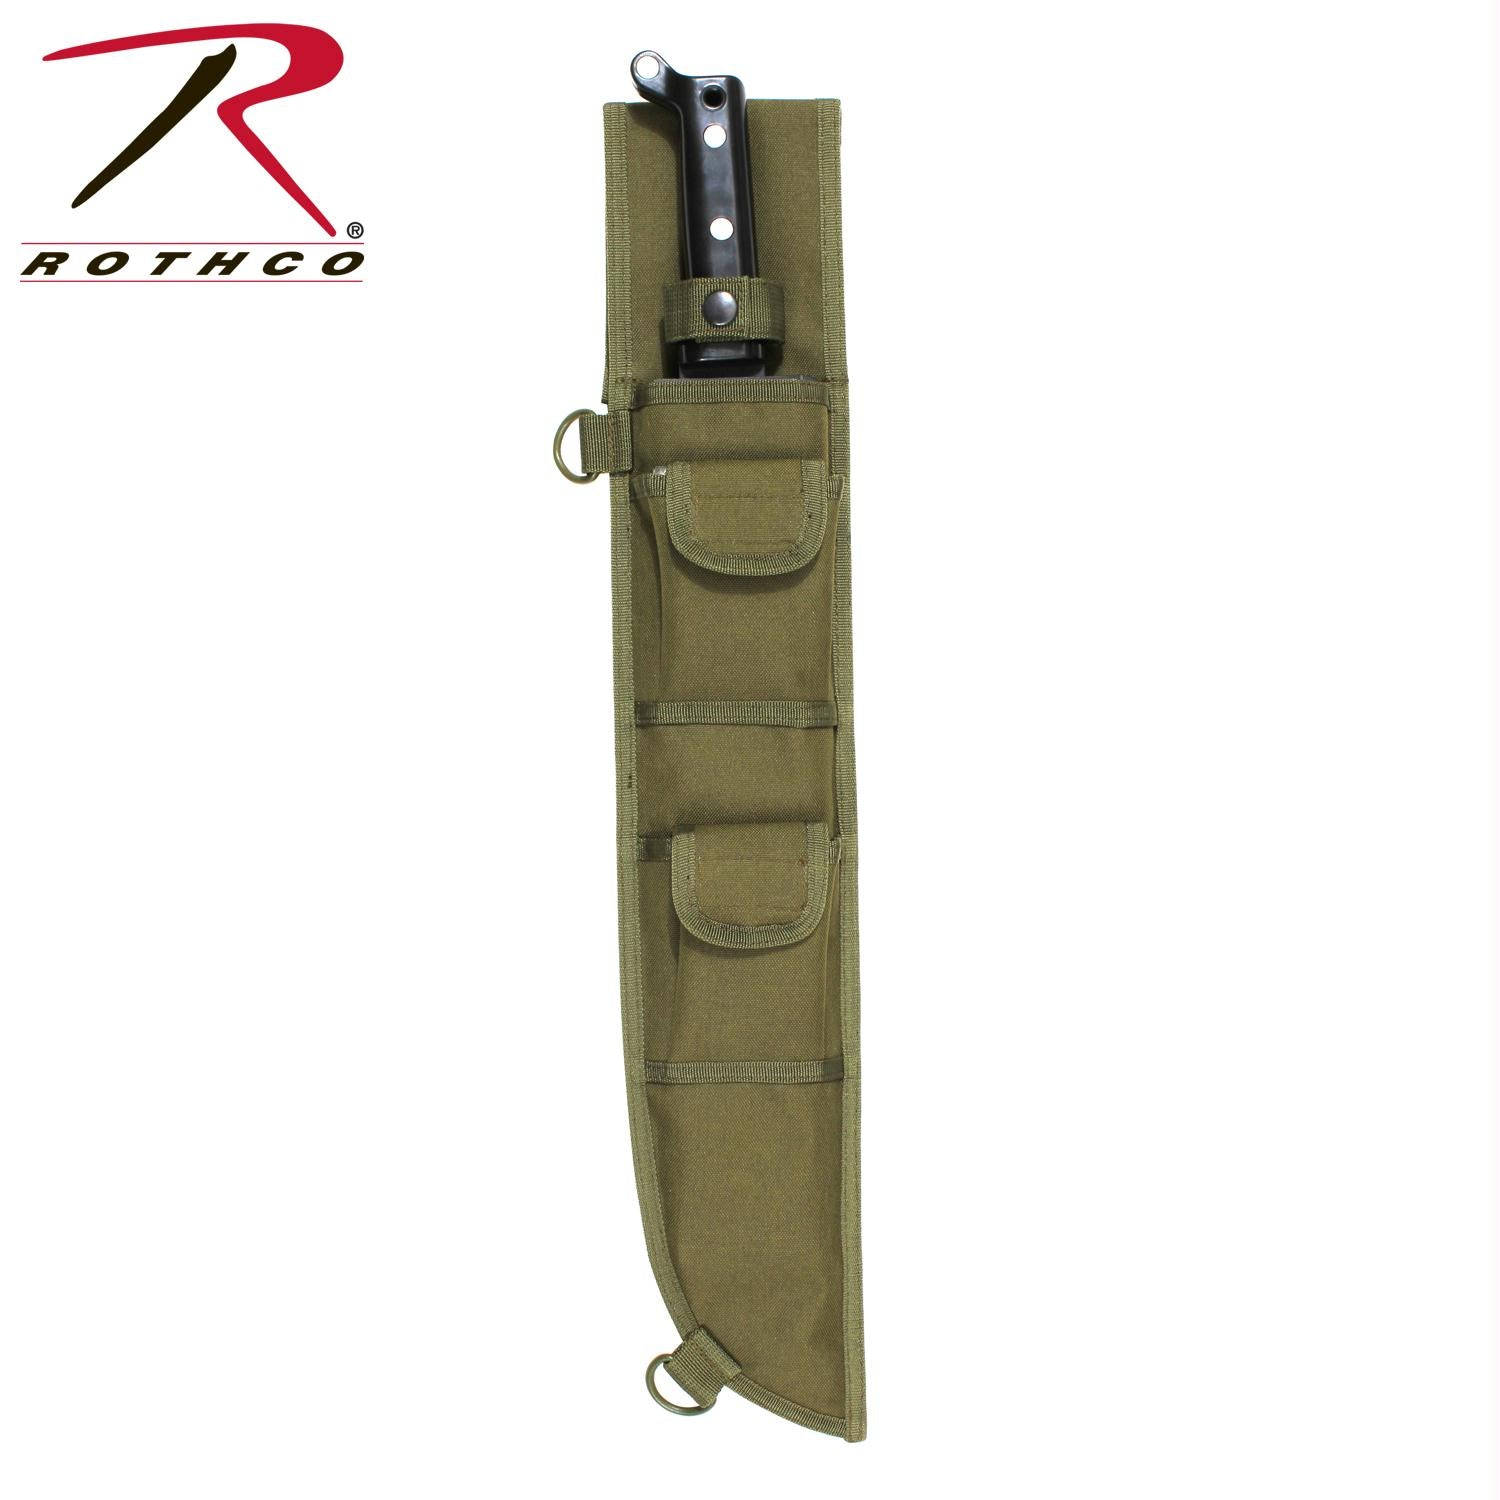 Rothco 18 Inch MOLLE Compatible Machete Sheath - Olive Drab